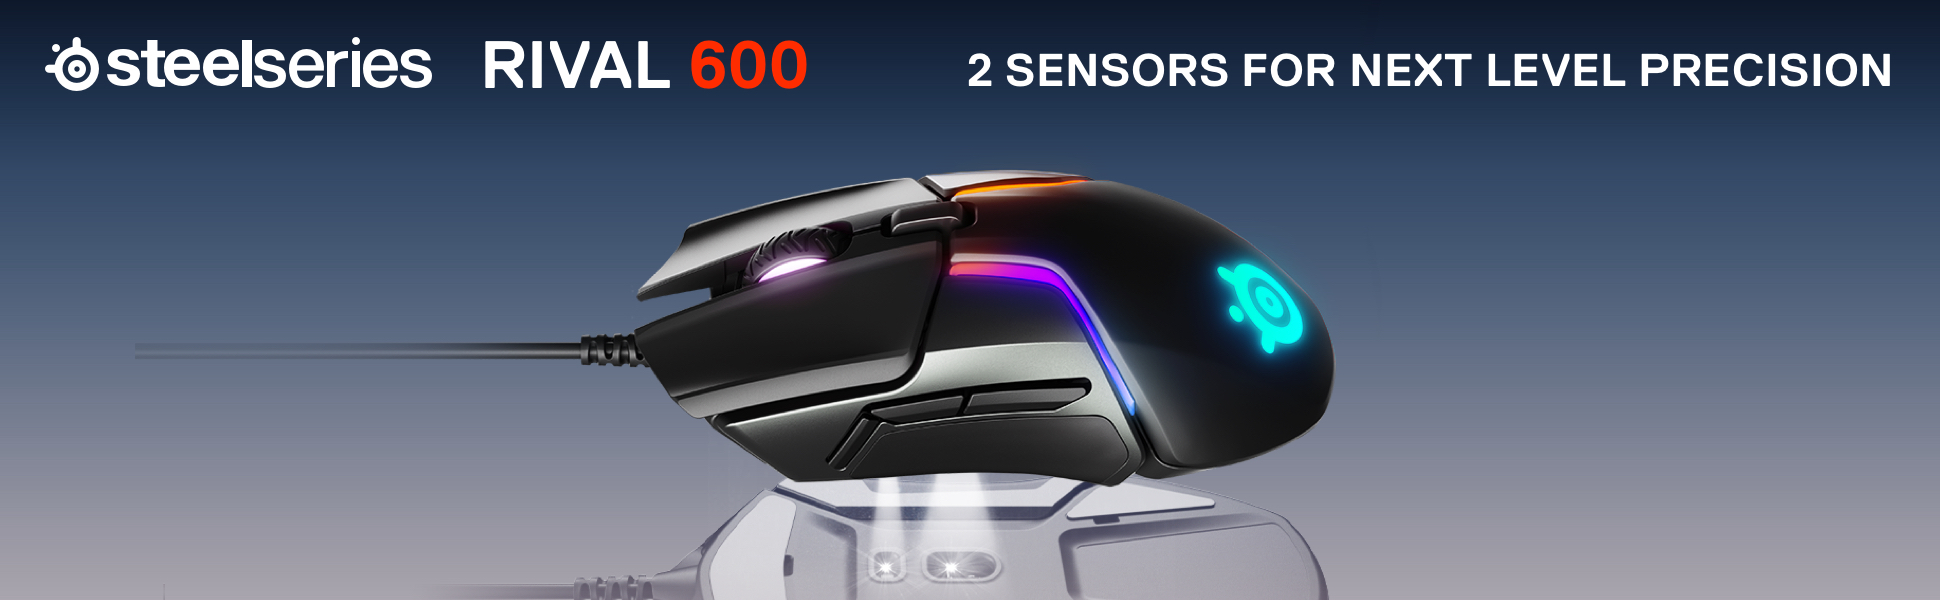 Steelseries Rival 600 Gaming Mouse - RGB Lighting | Canada